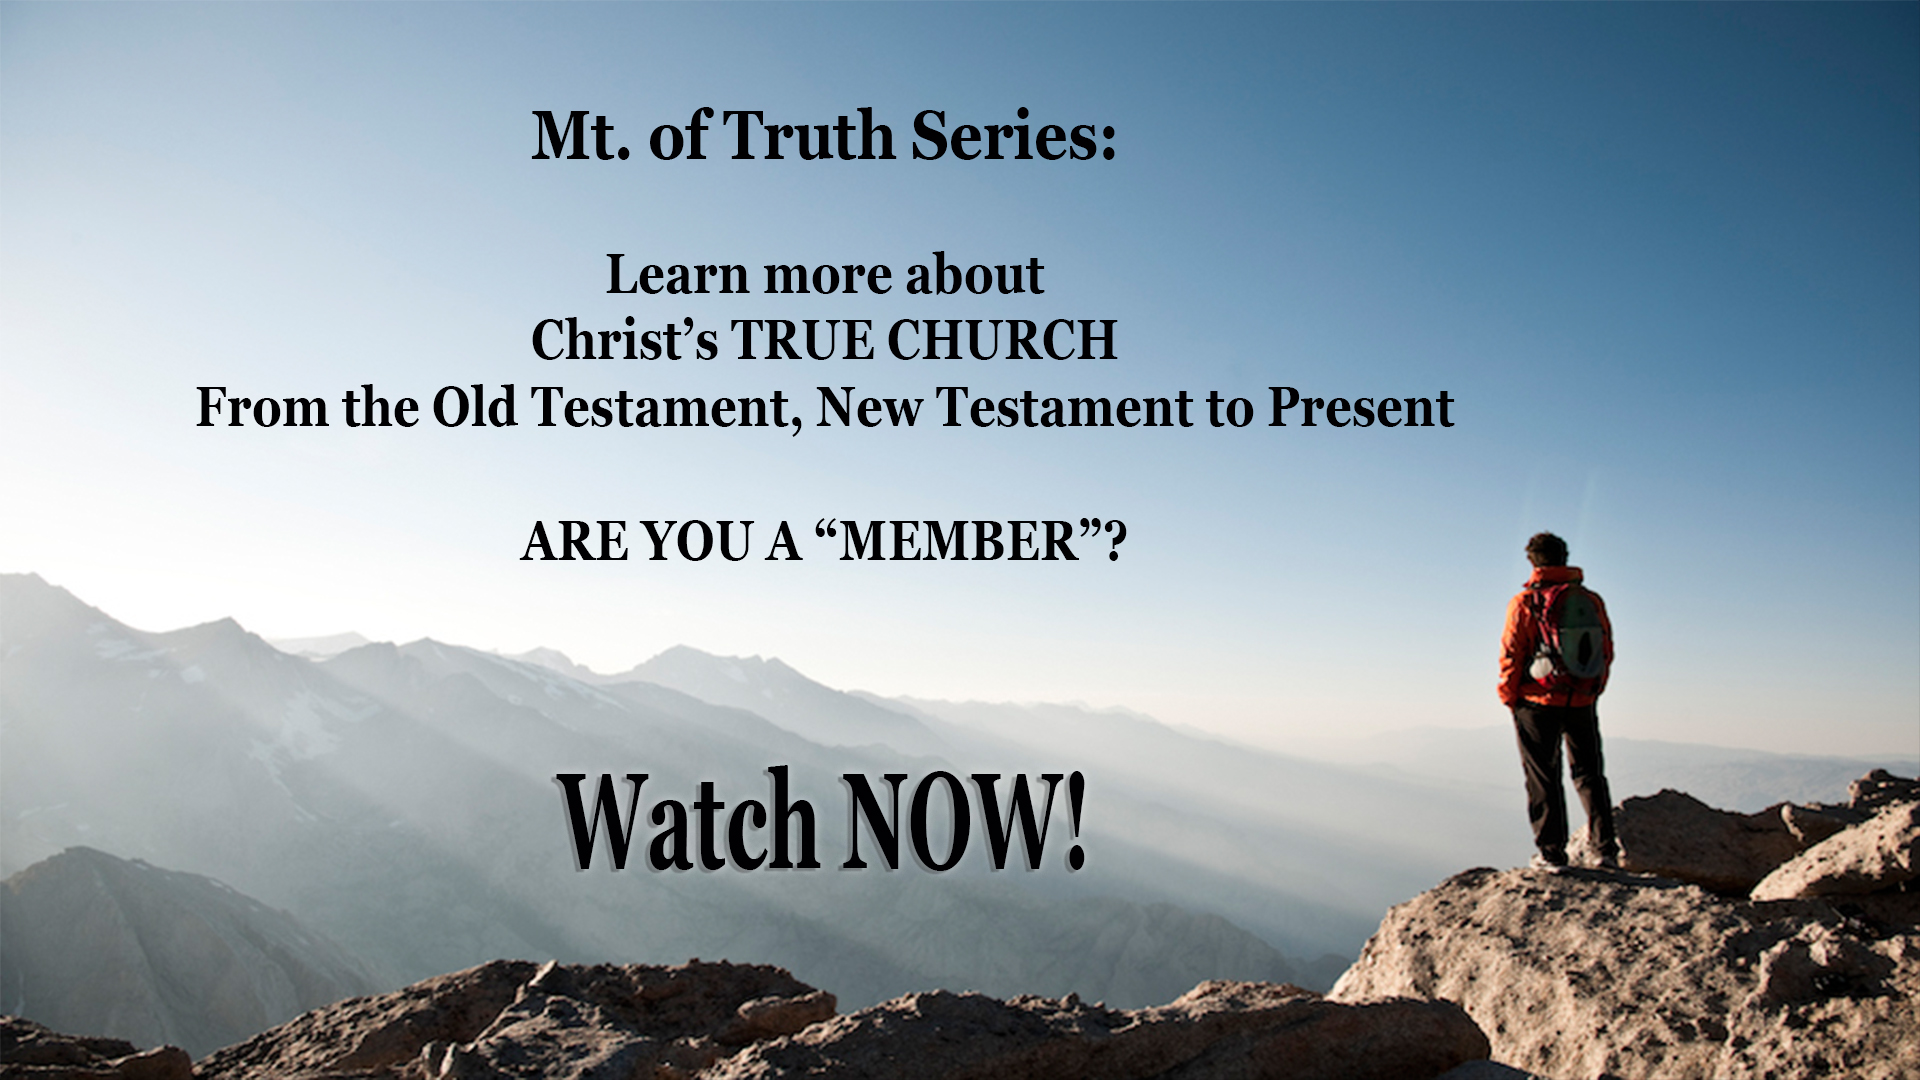 Mt of Truth Series